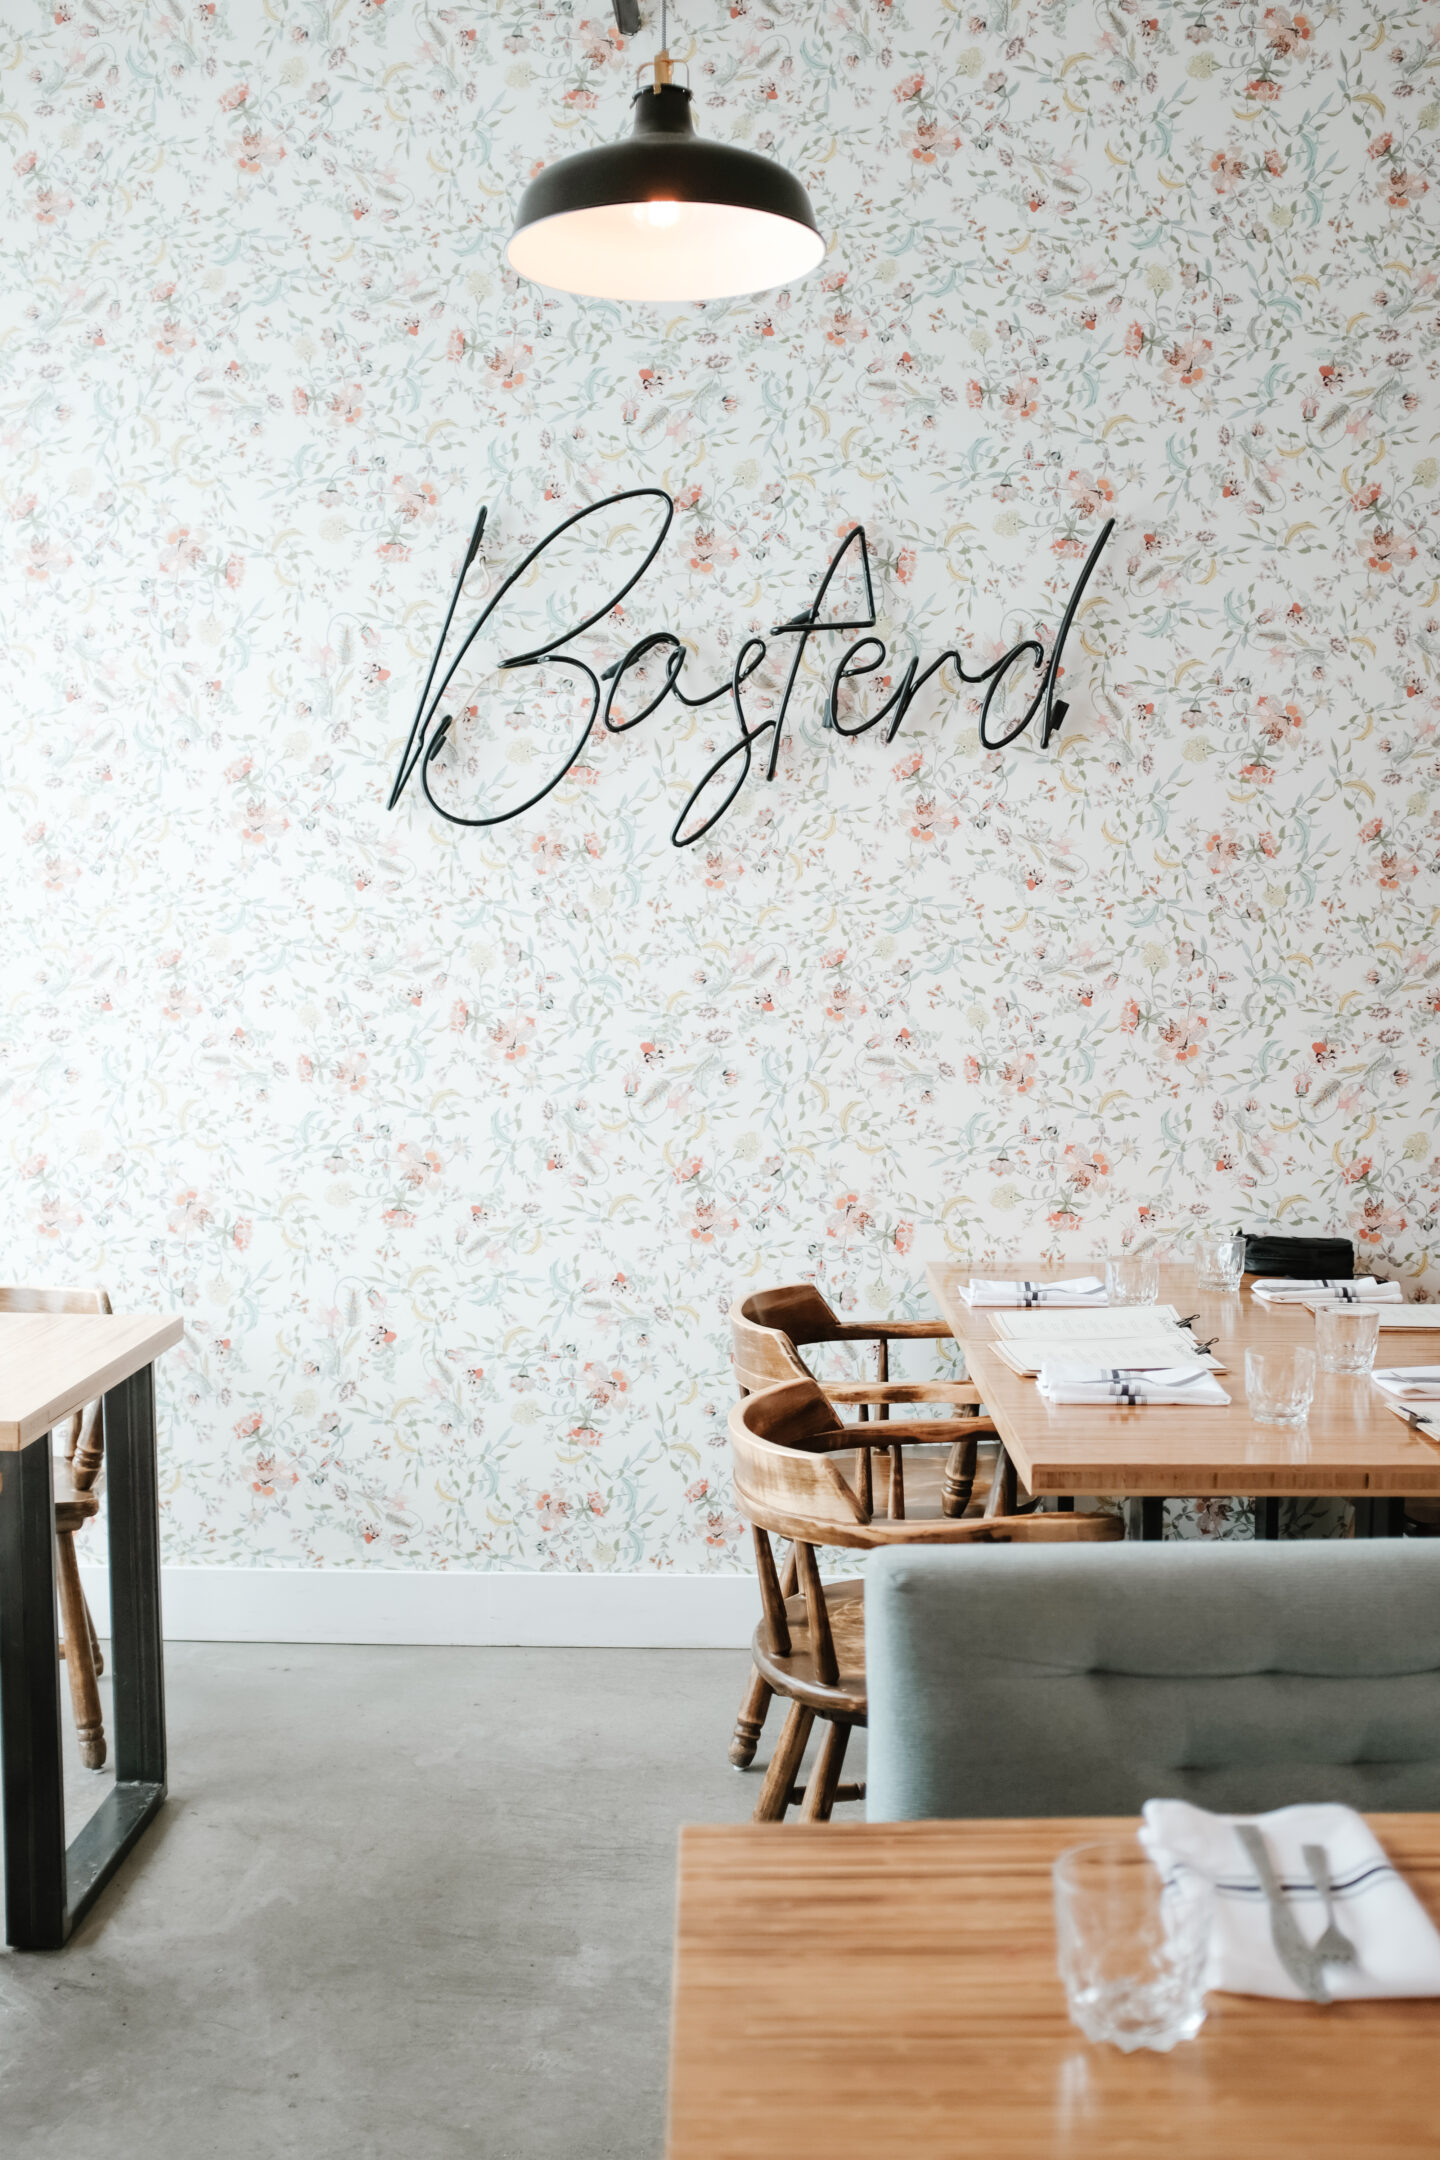 Best Brunch places to visit in Montreal